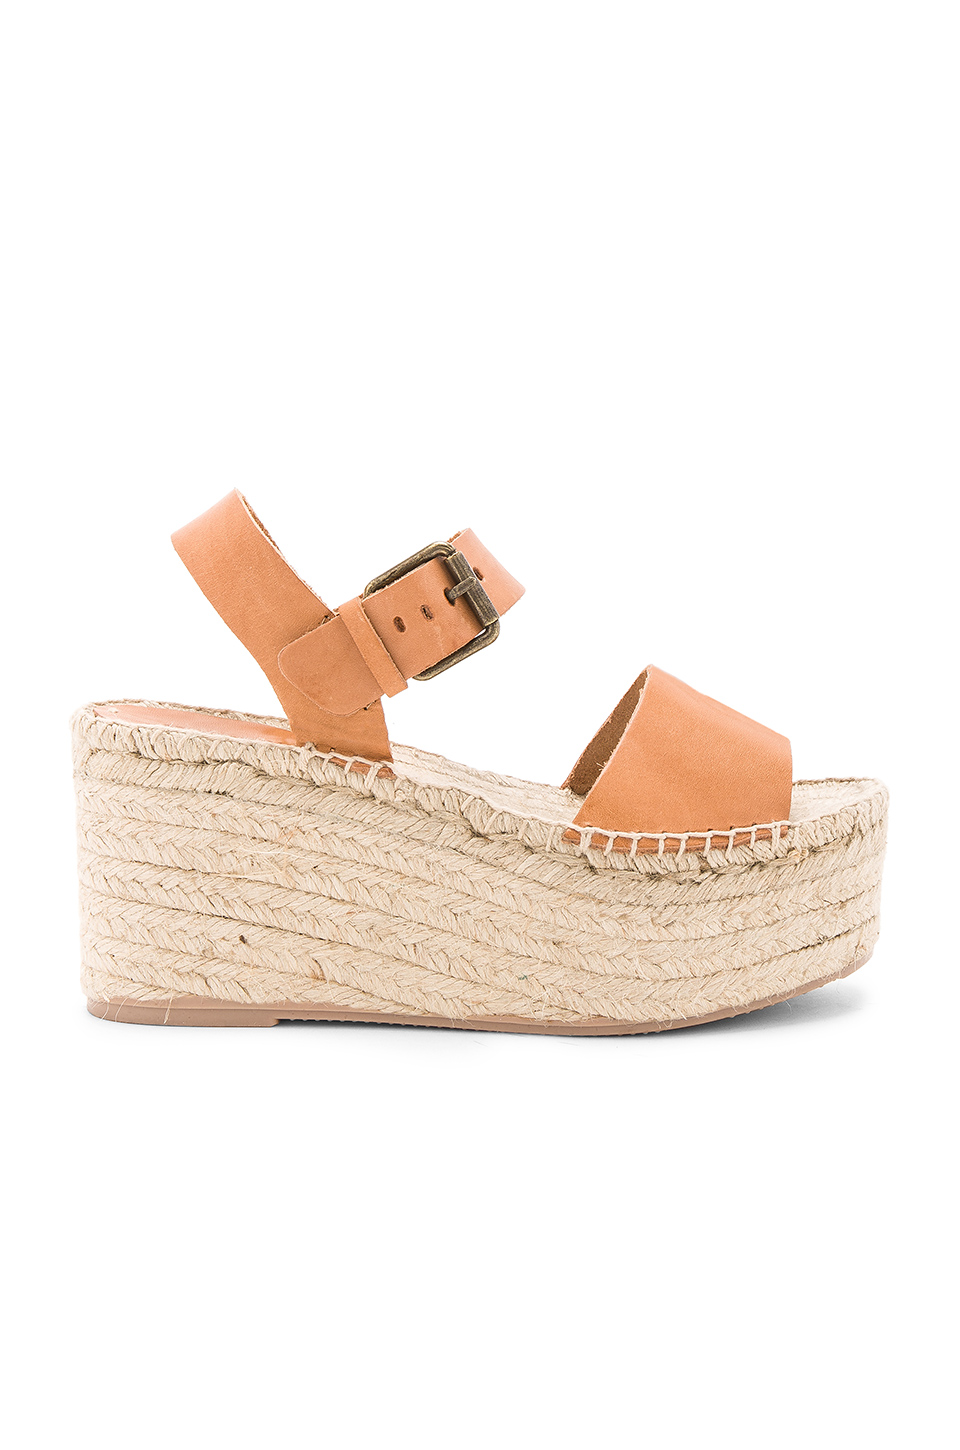 c852d033f51d Soludos Minorca Leather High Platform Espadrille Sandals In Nude ...